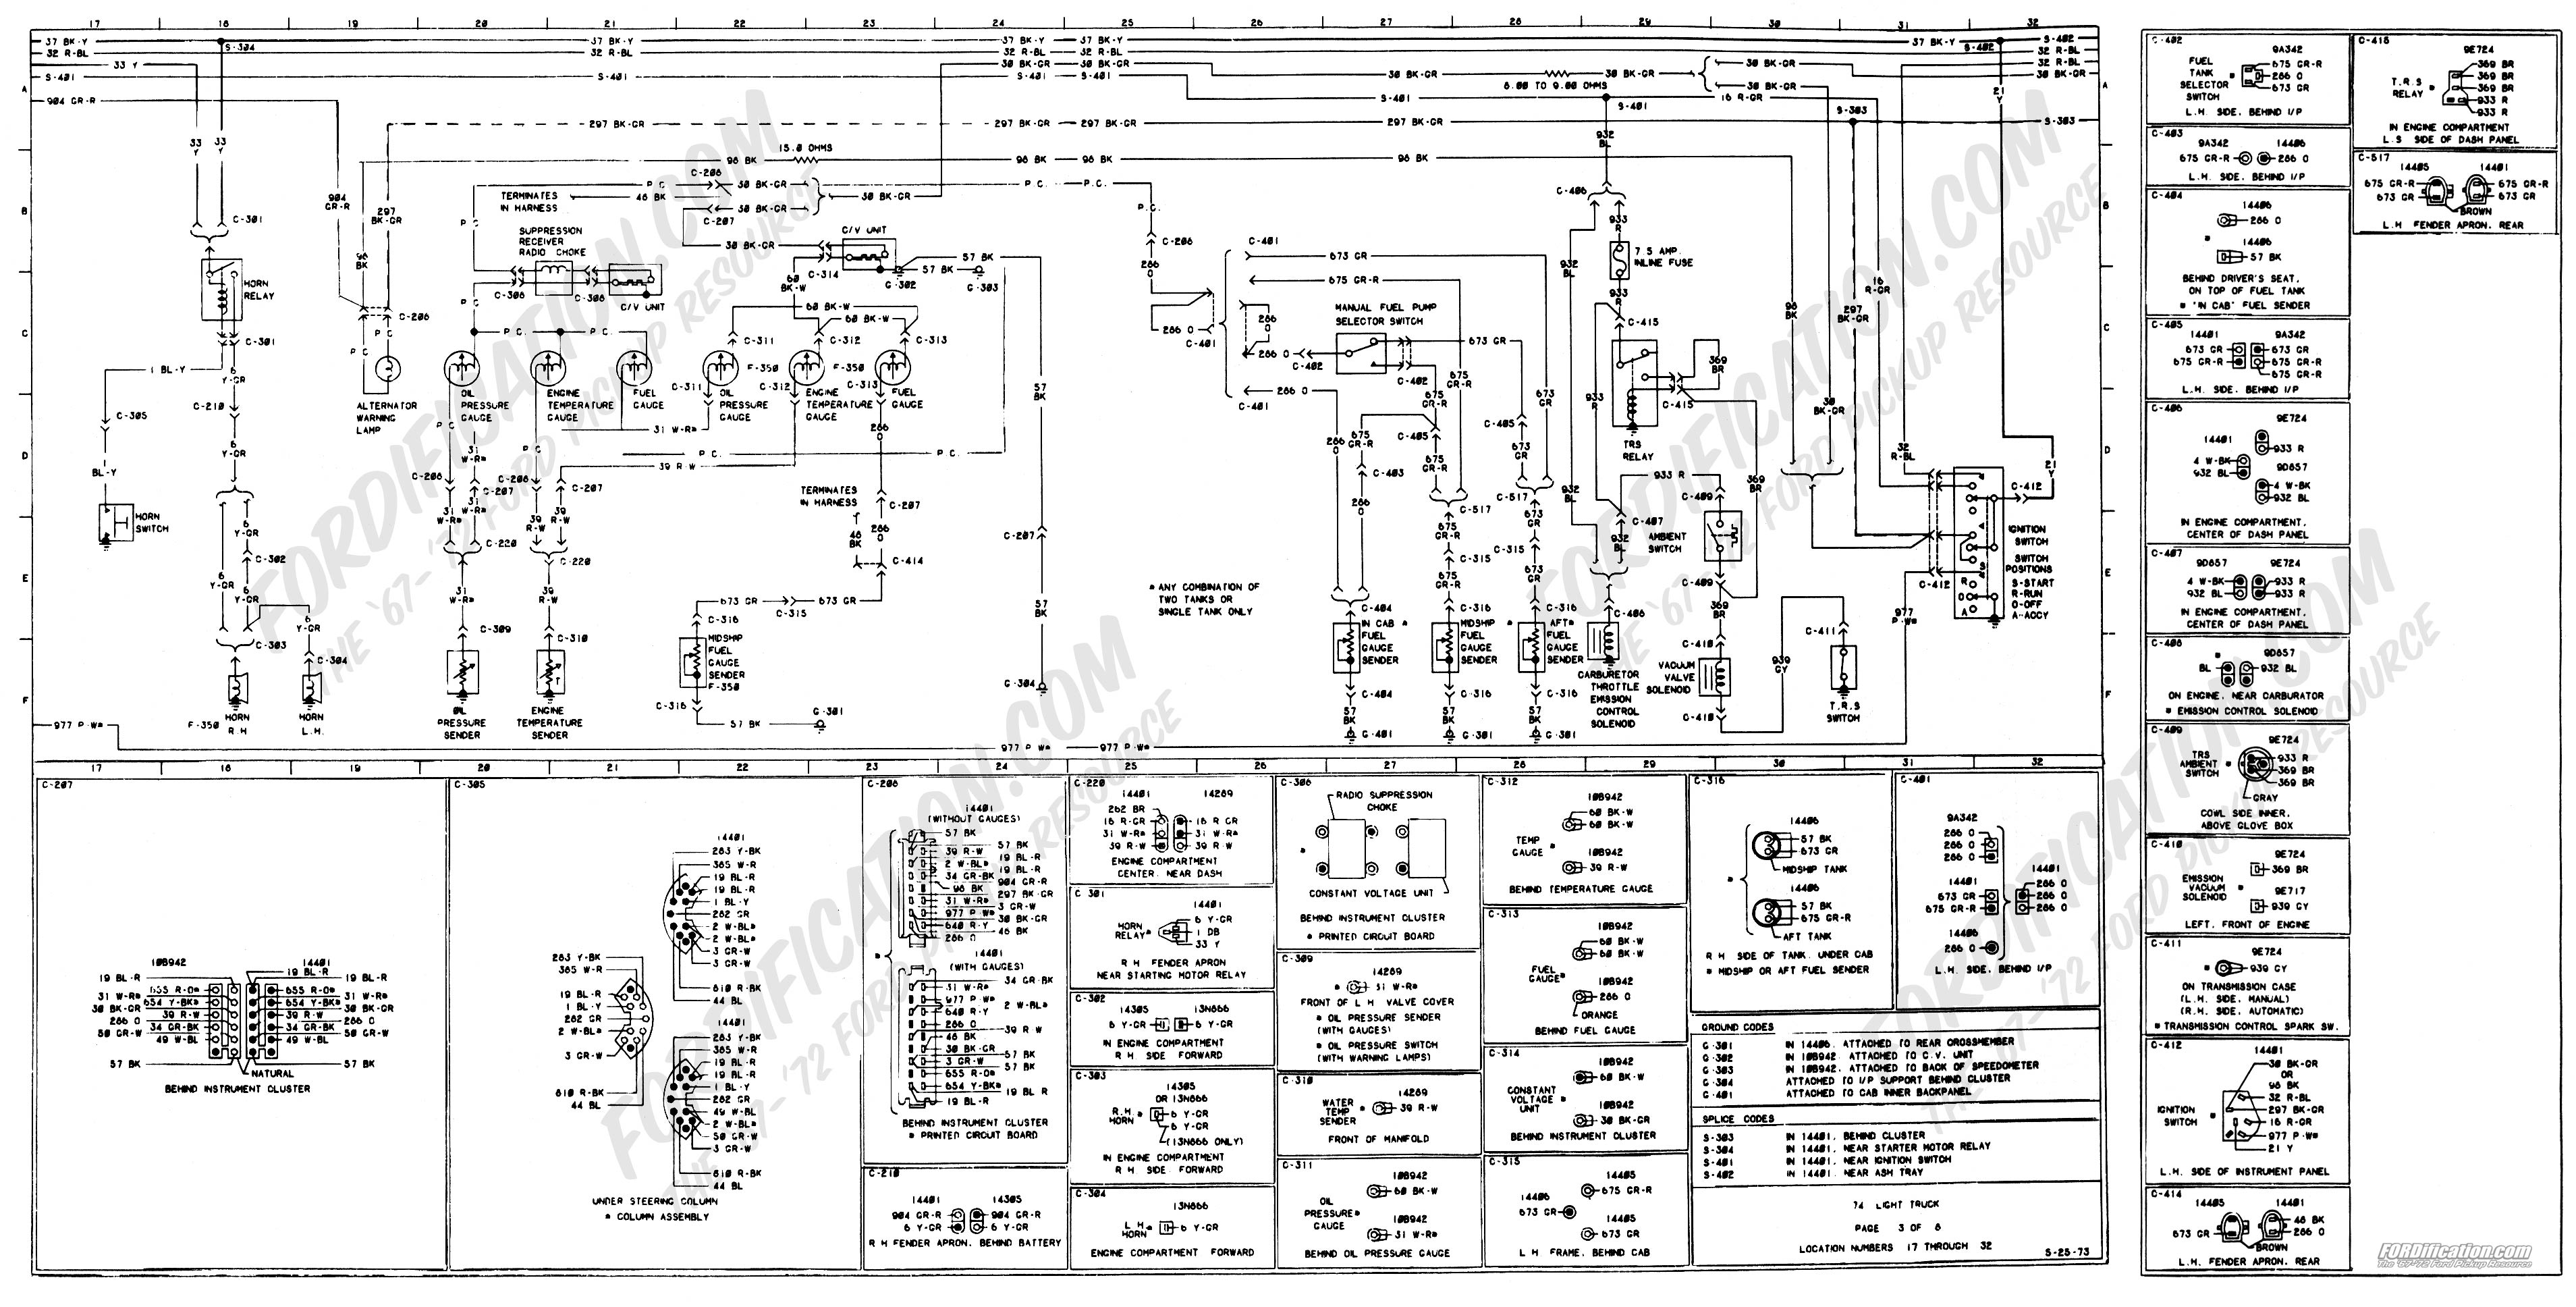 wiring_74master_3of8 1973 1979 ford truck wiring diagrams & schematics fordification net 1979 bronco fuse box diagram at crackthecode.co